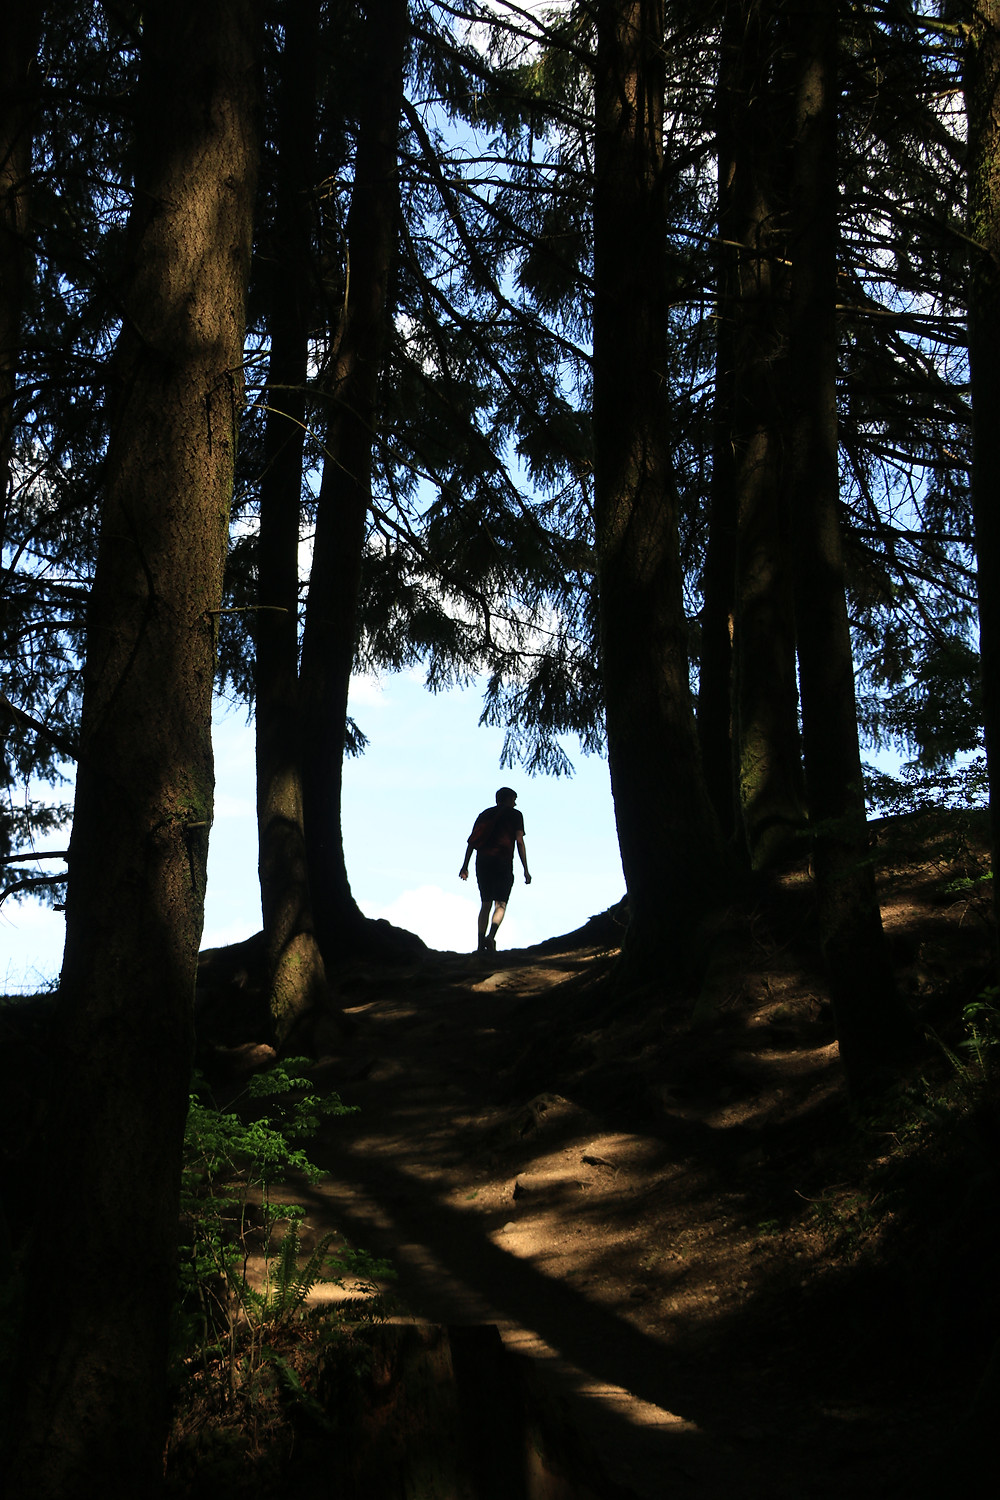 Man hiking to an opening in the trees on Poo Poo Point